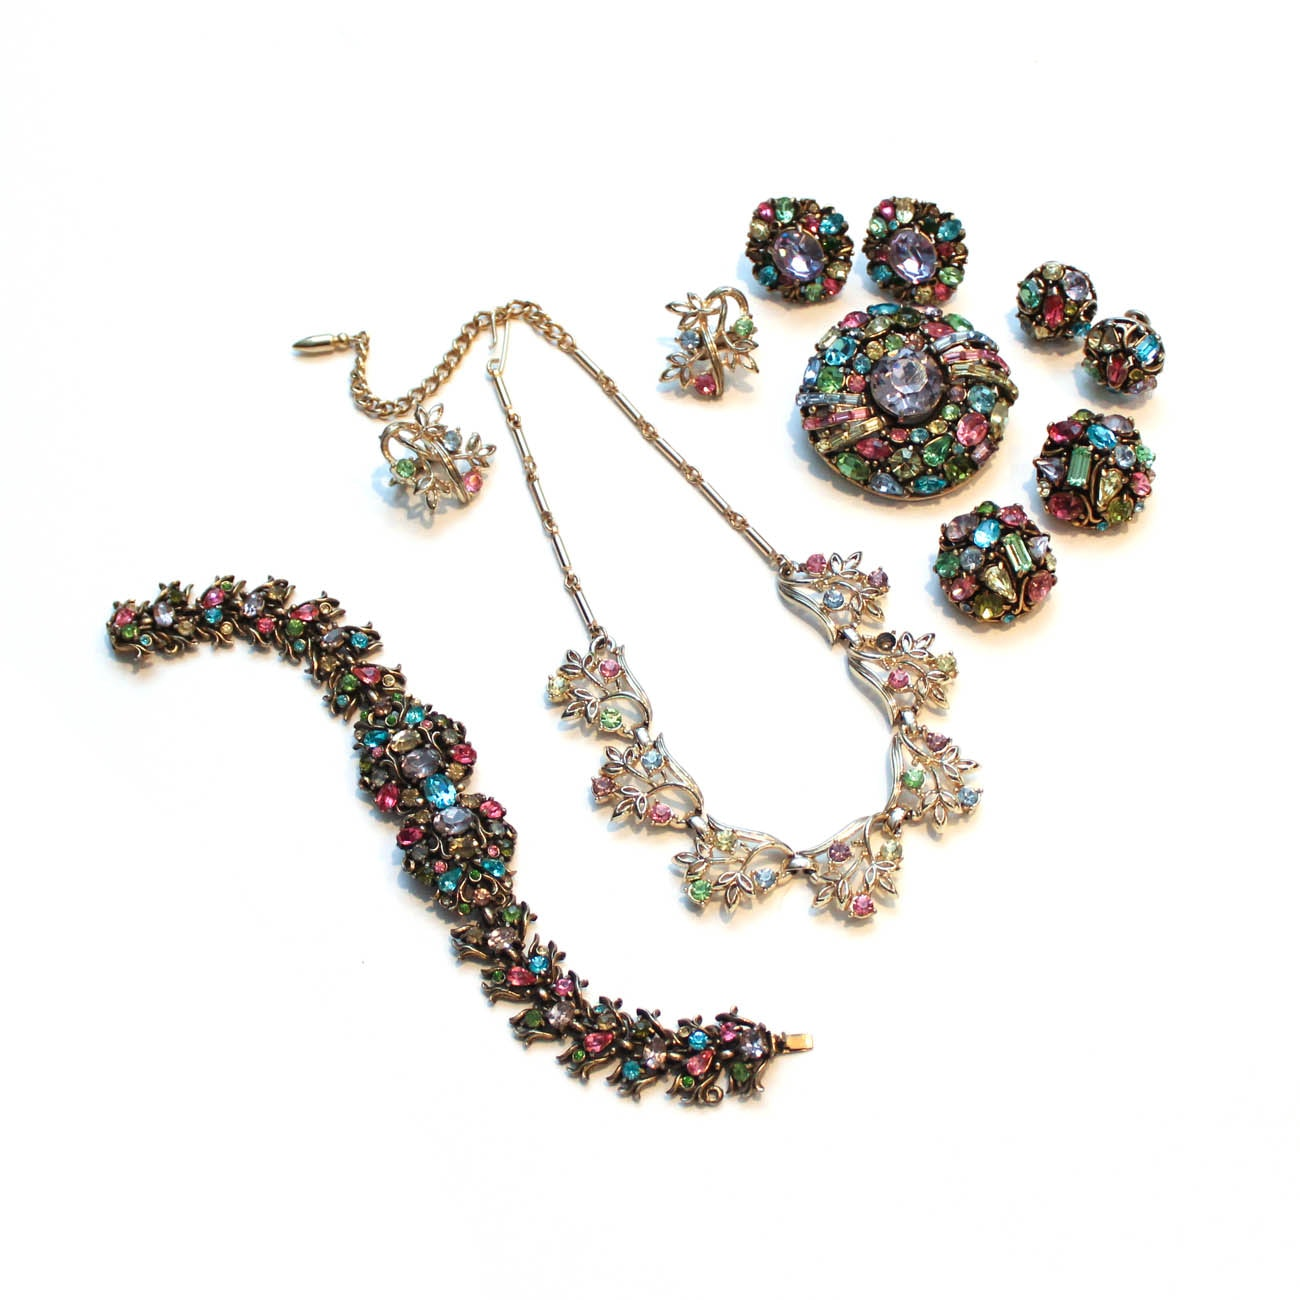 Vintage Costume Jewelry Including Hollycraft